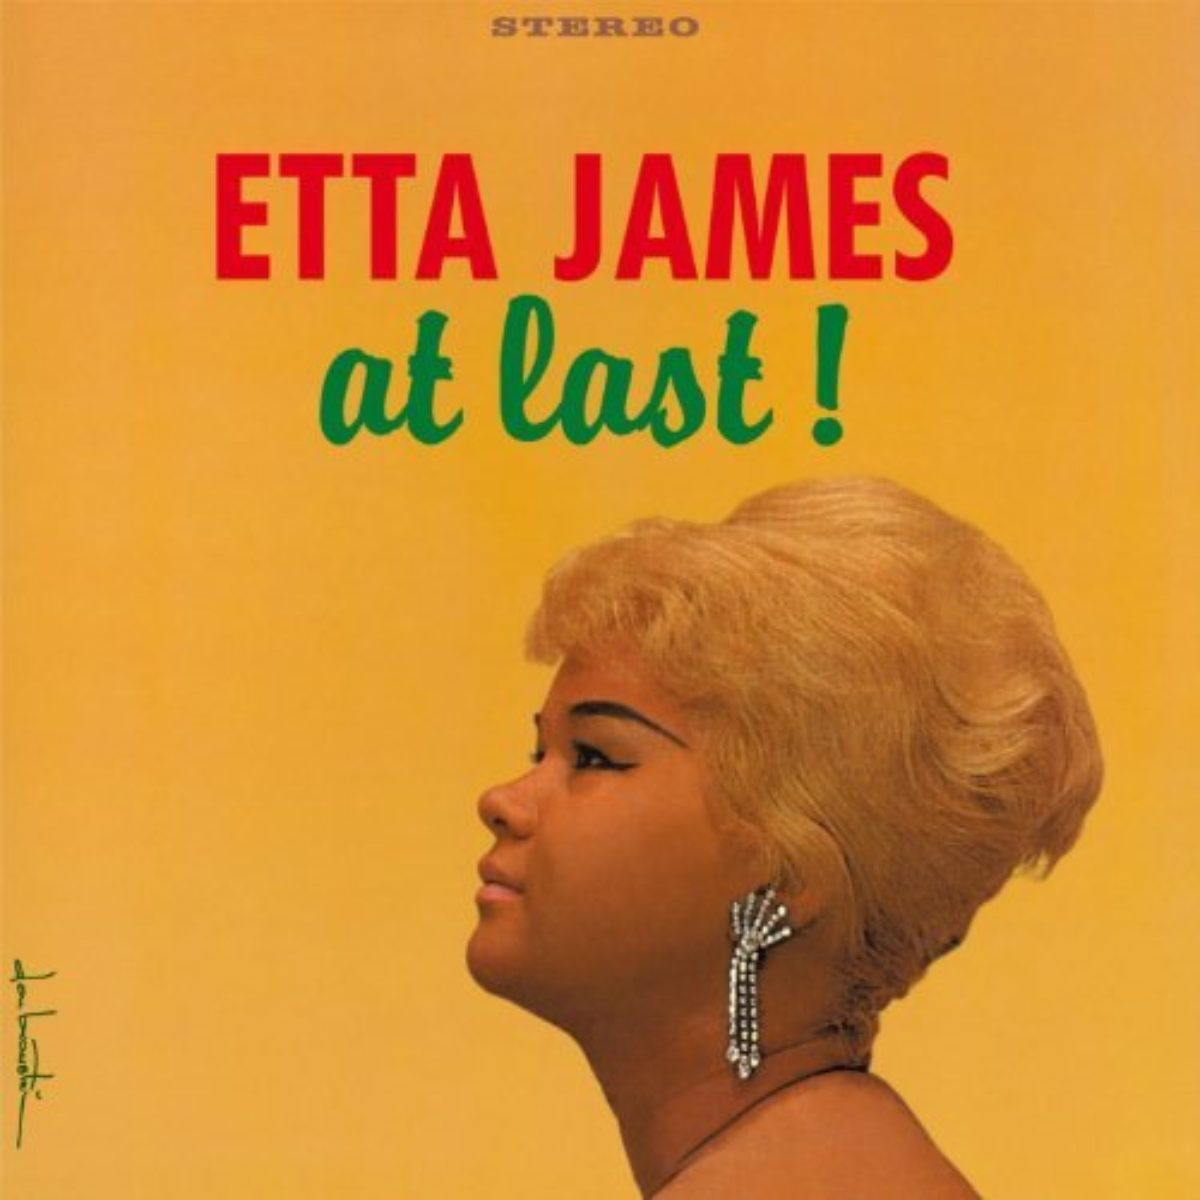 Etta-James-At-Last-album-cover-1200x1200-1